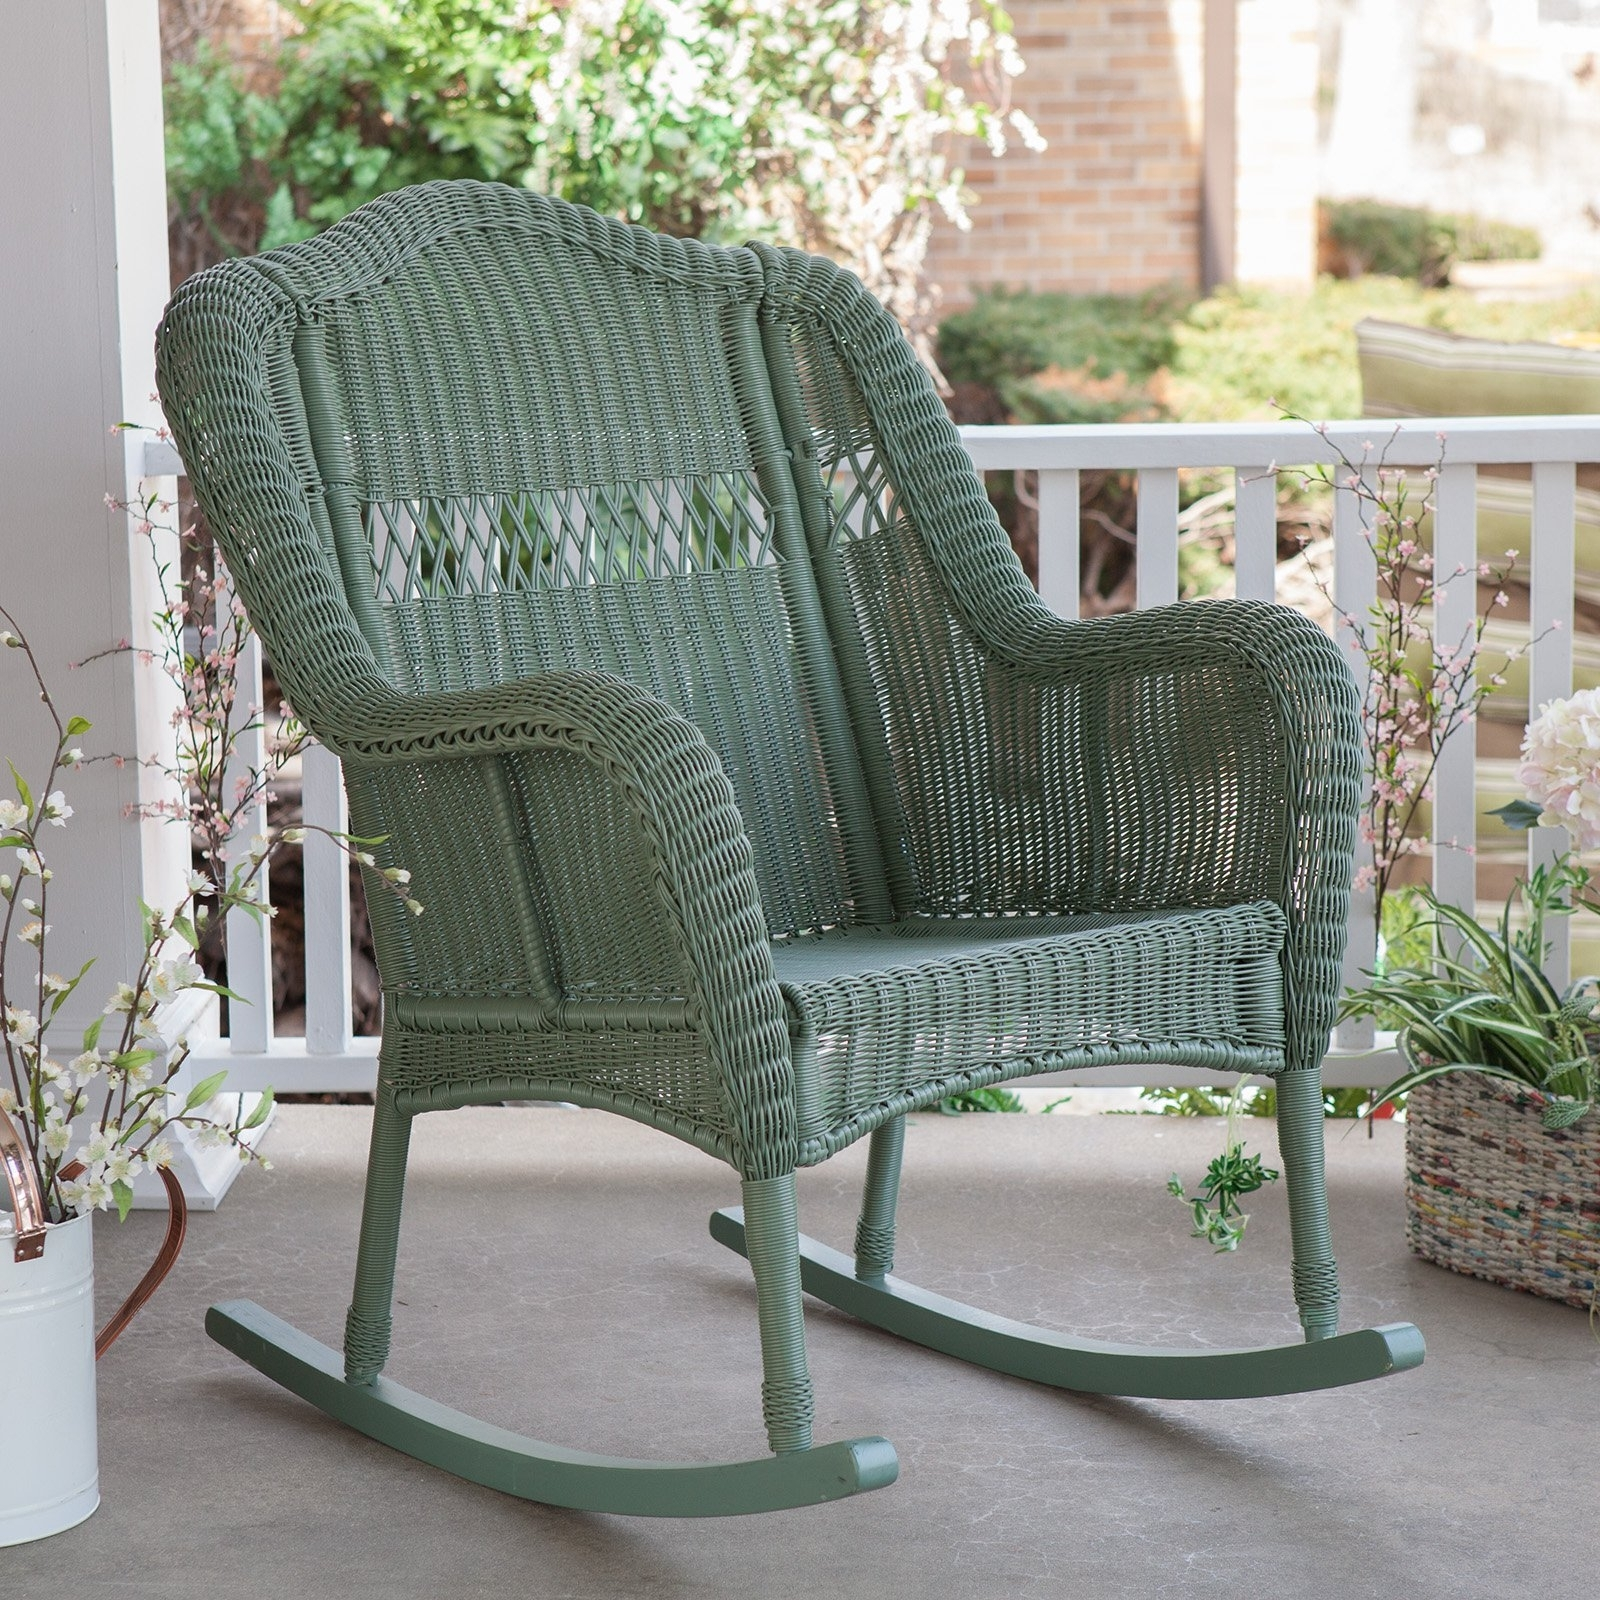 Wicker Rocking Chair With Magazine Holder Intended For Best And Newest White Rocking Chair Outdoor Walmart Outdoor Chair Eames Rar White (View 11 of 15)